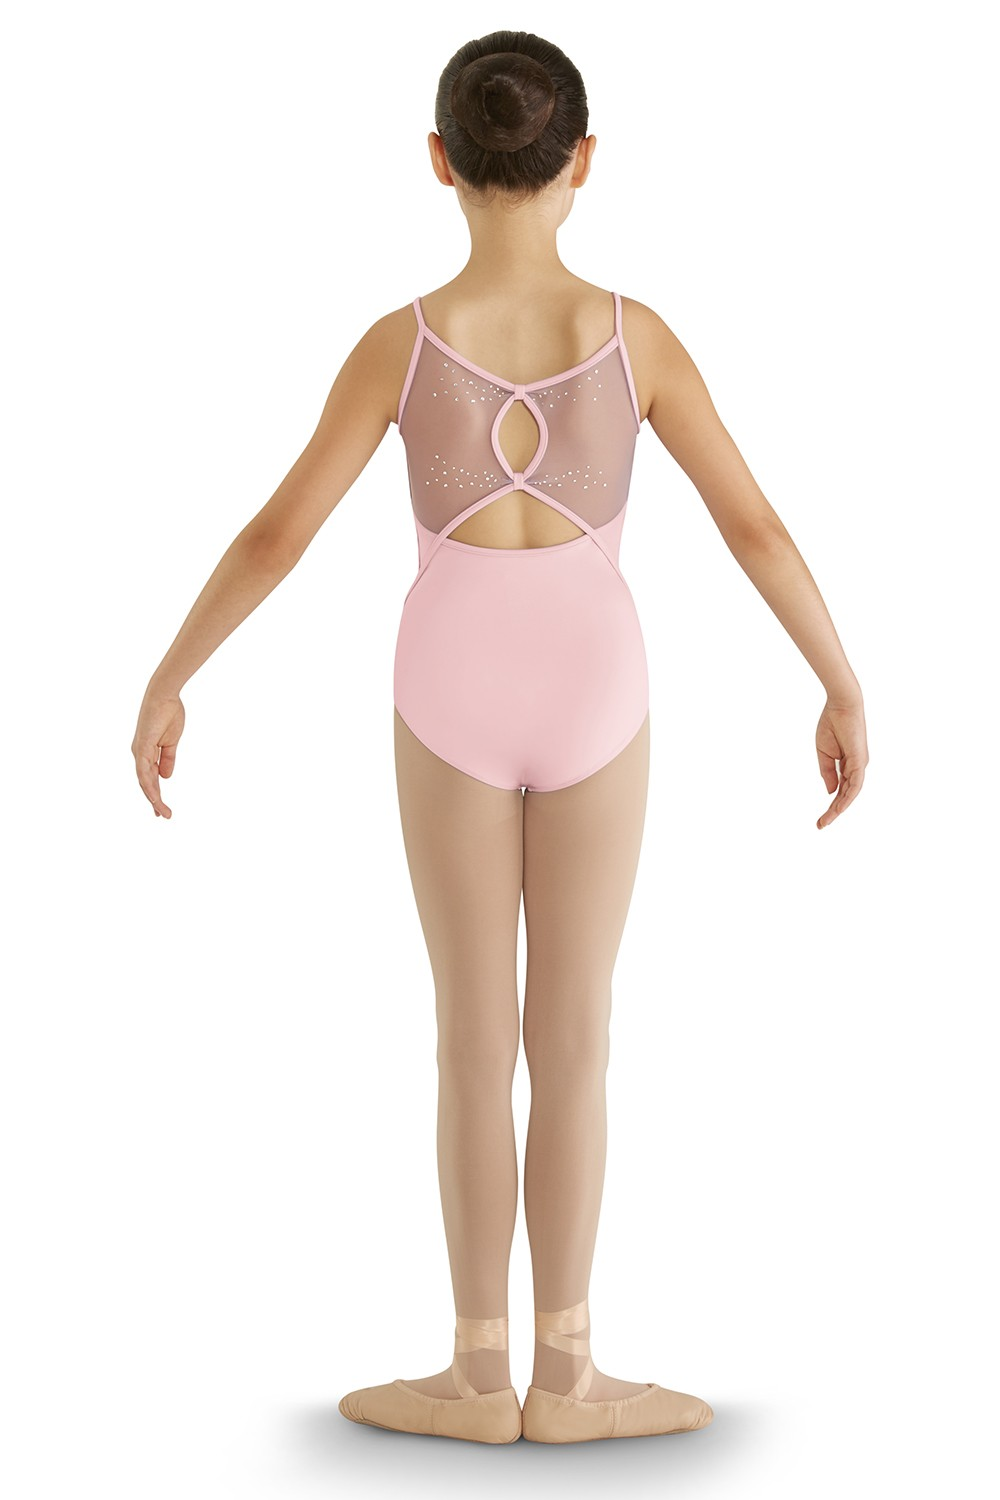 Mizar Children's Dance Leotards